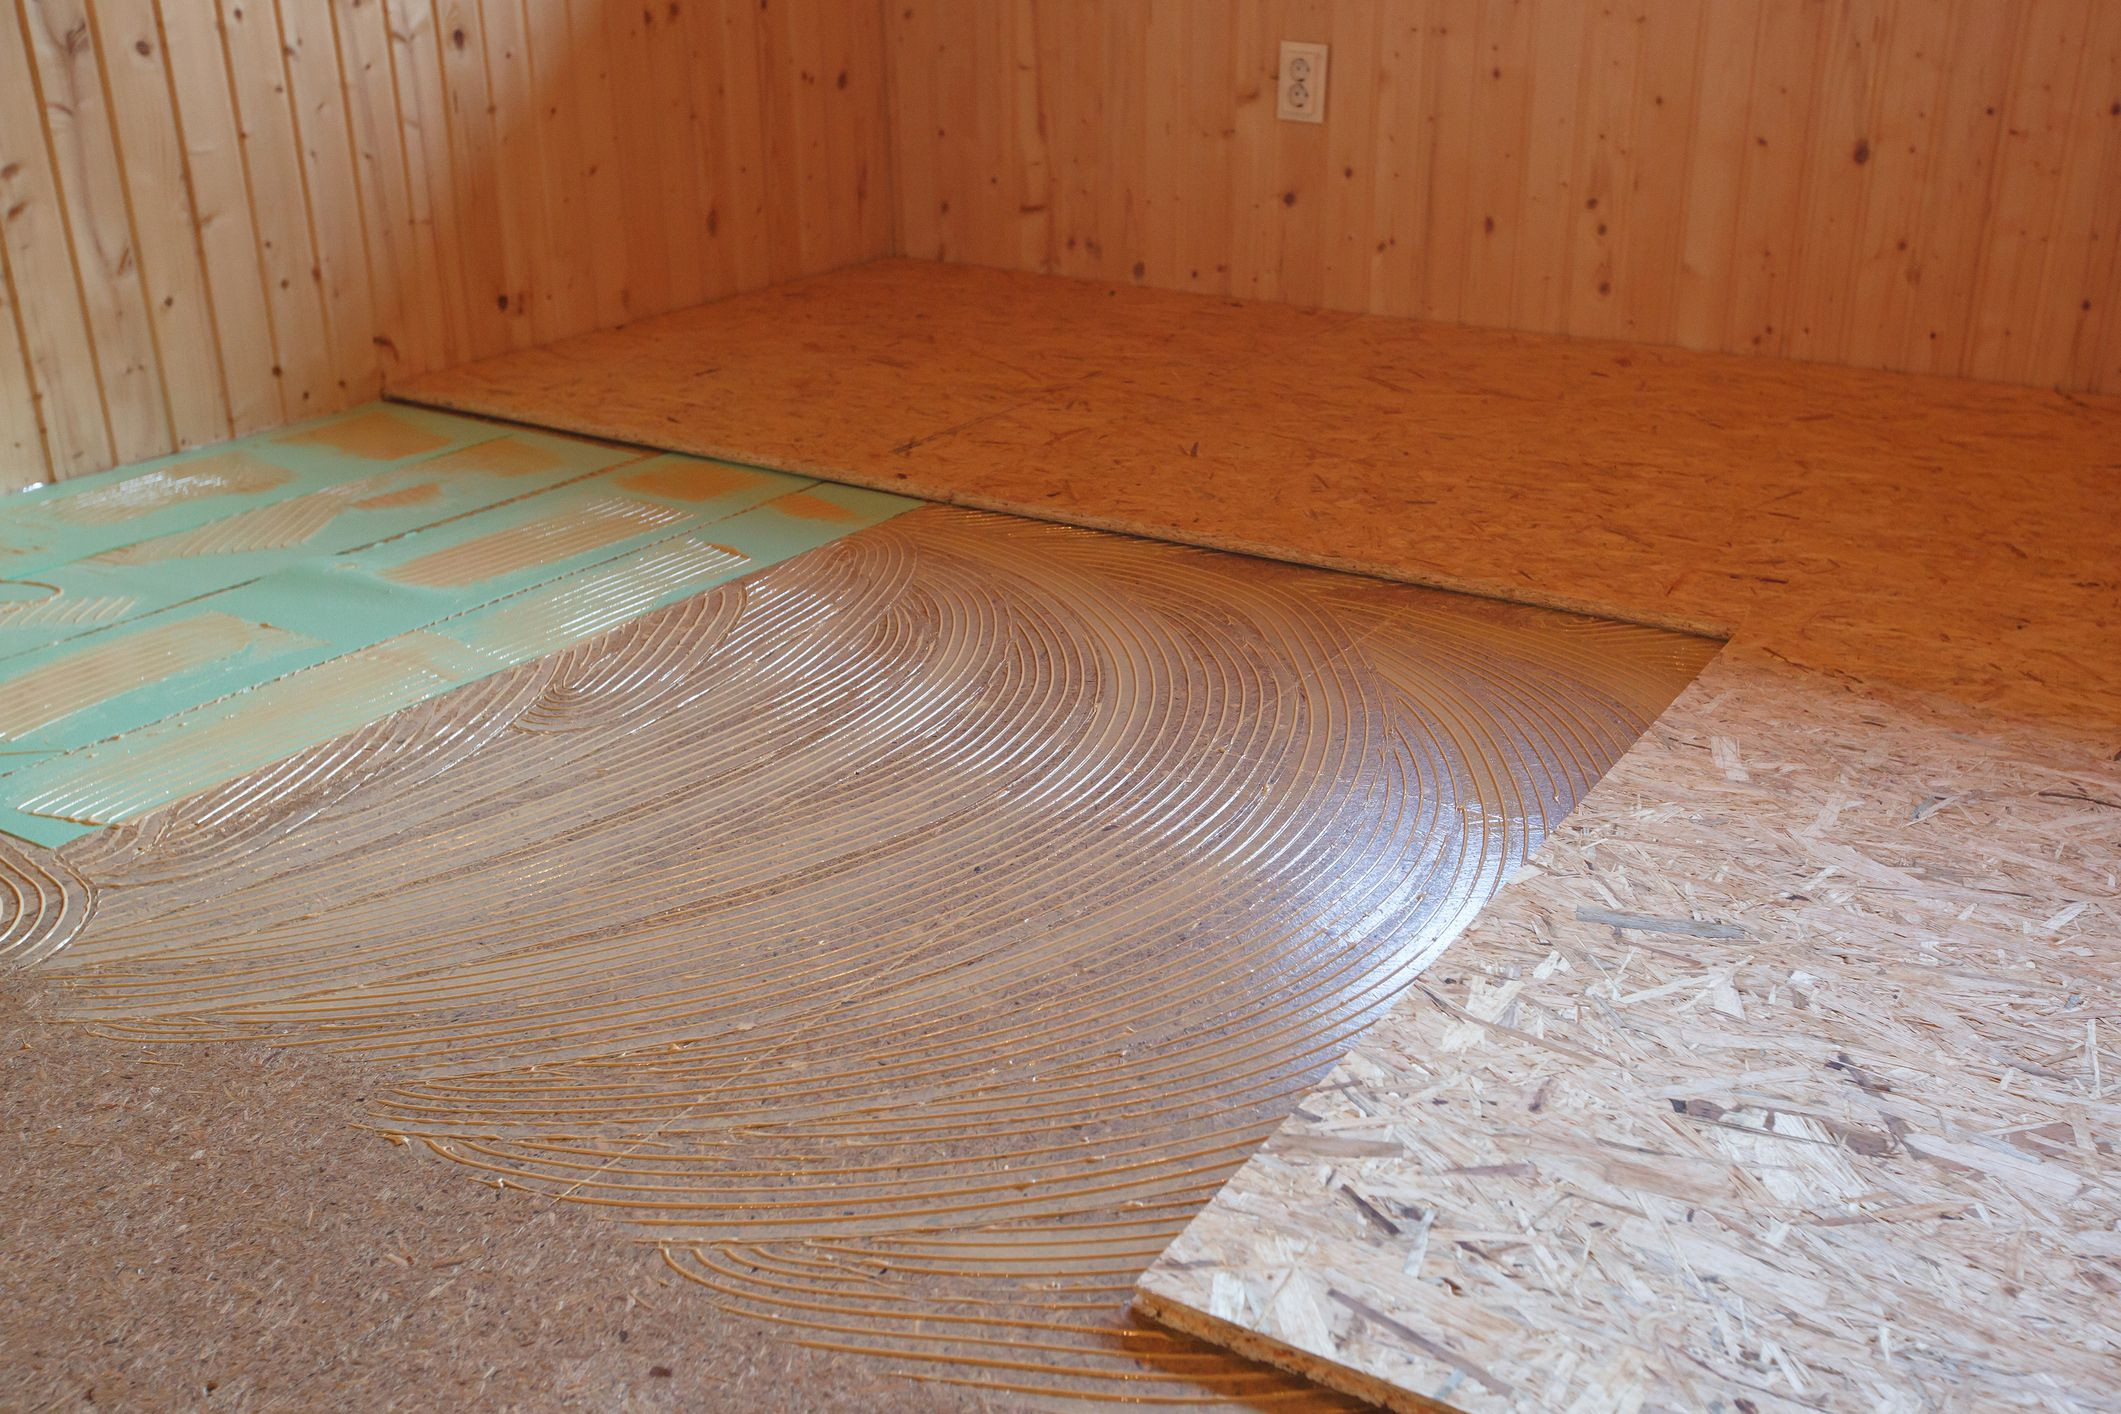 best hardwood floor for basement of types of subfloor materials in construction projects with gettyimages 892047030 5af5f46fc064710036eebd22